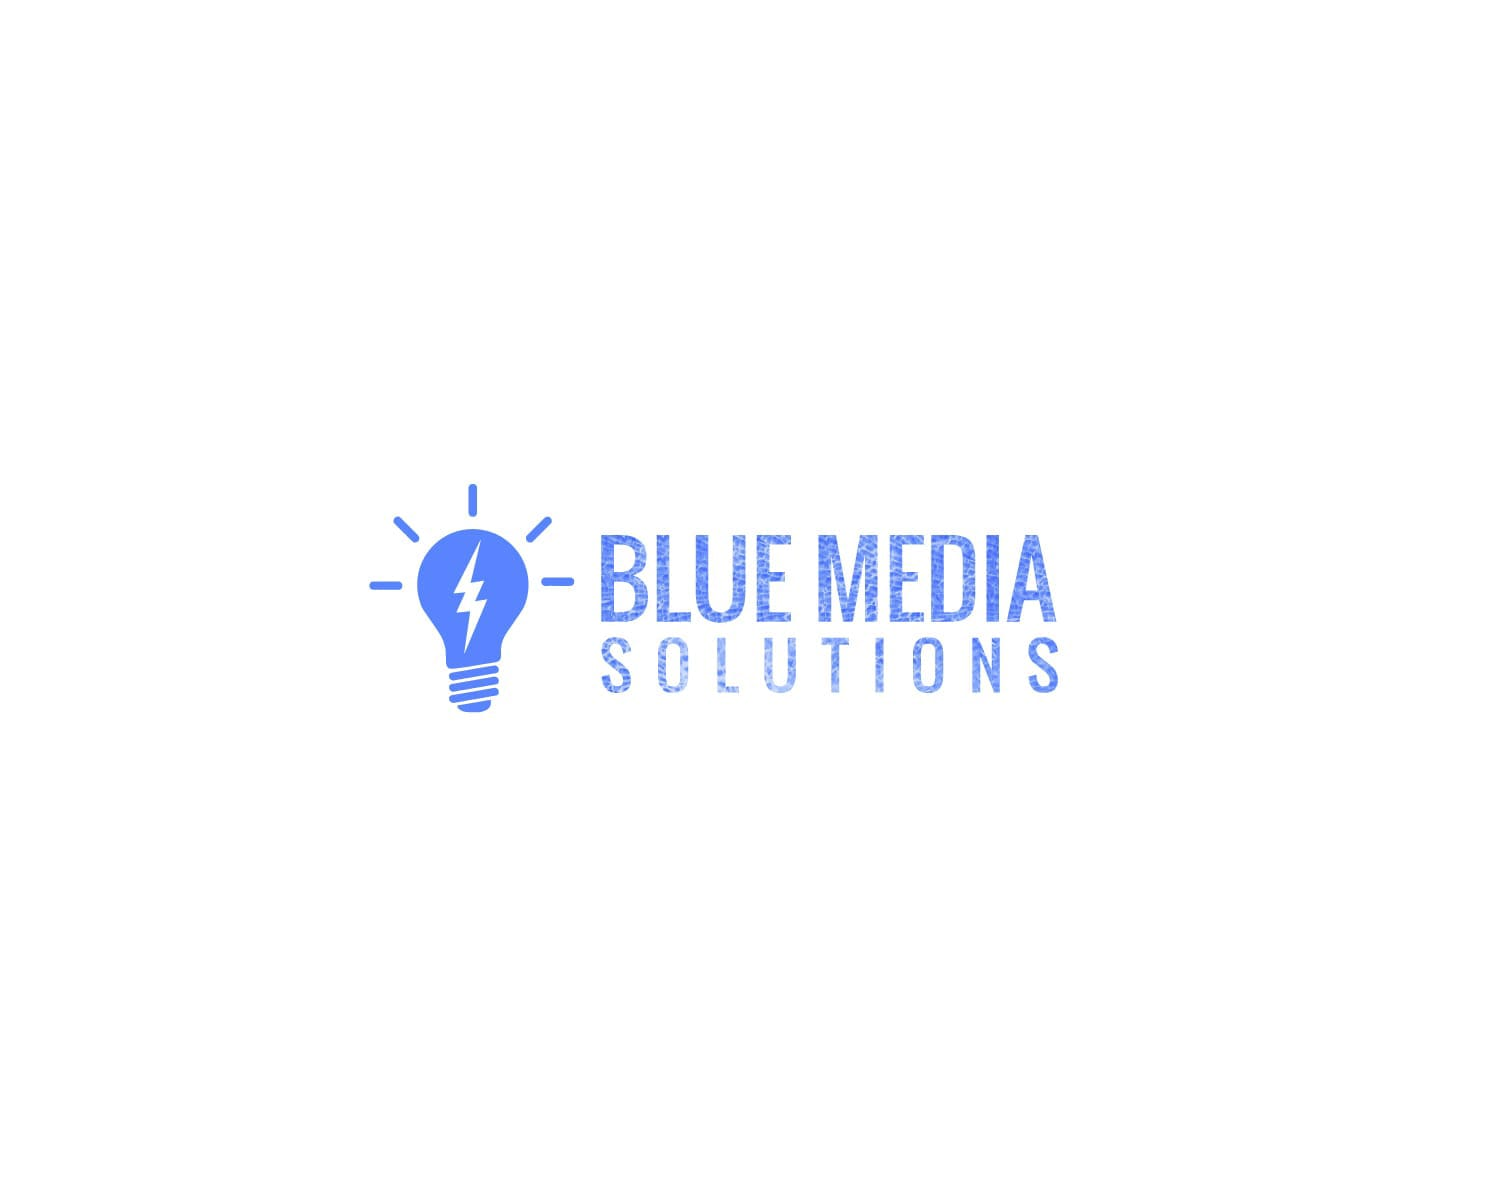 Blue Media Solutions primary image